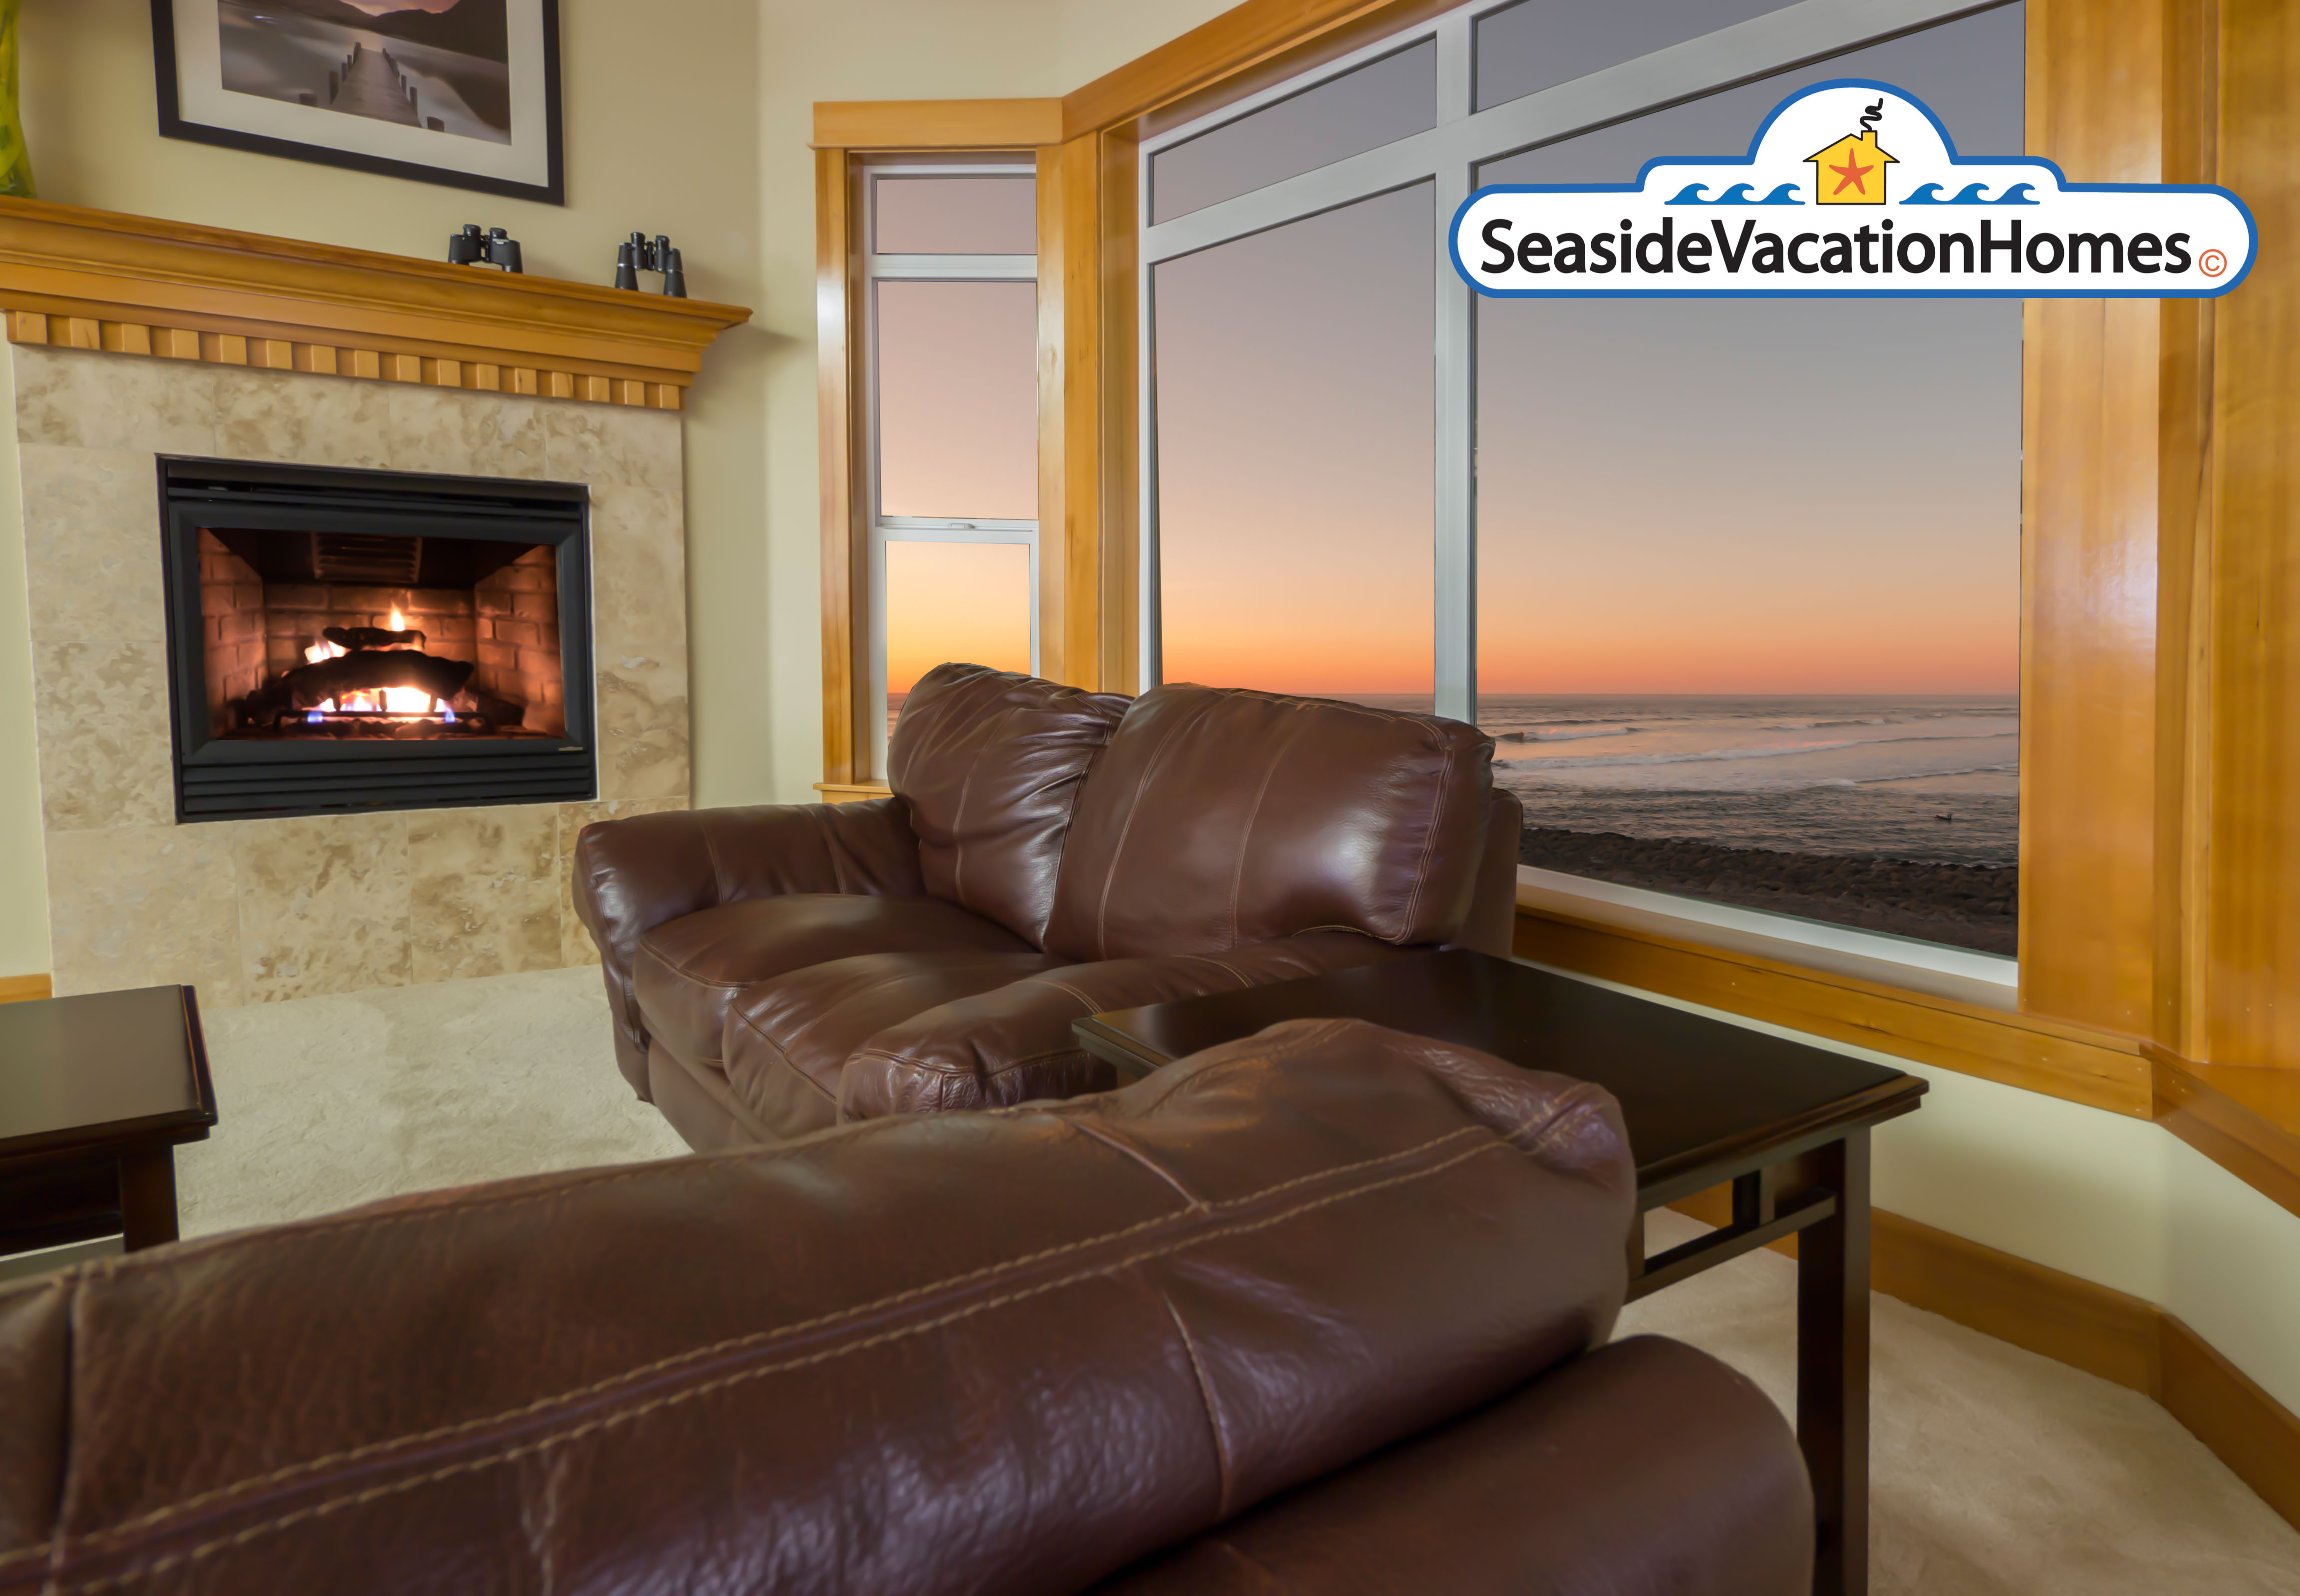 Seaside, OR oceanfront 4 bedroom vacation house for rent sleeps 9